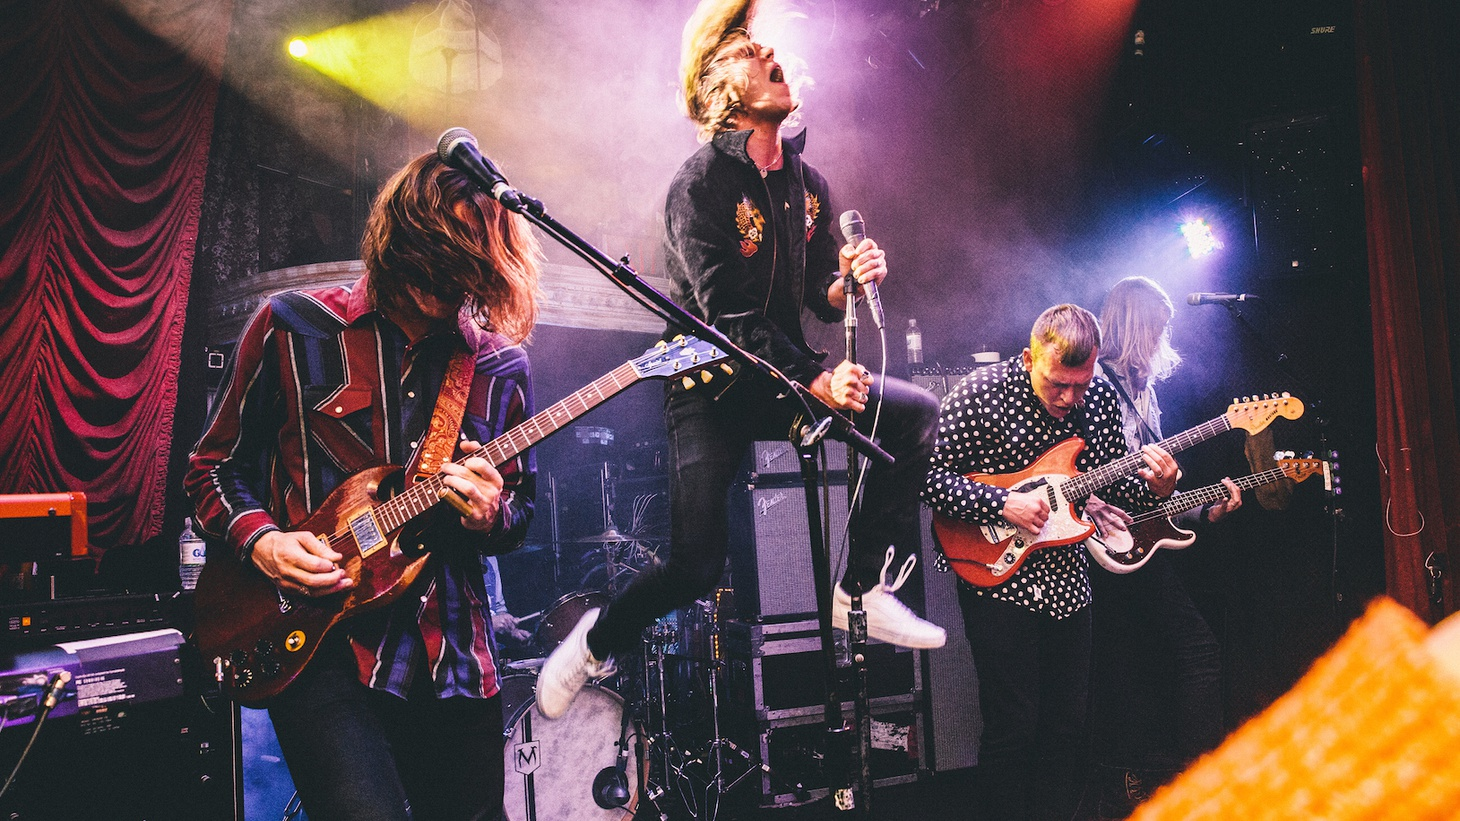 Kentucky rockers Cage the Elephant are now based in Nashville and turned to one of the city's most celebrated musical residents -- the Black Keys' Dan Auerbach – to produce their fourth album.